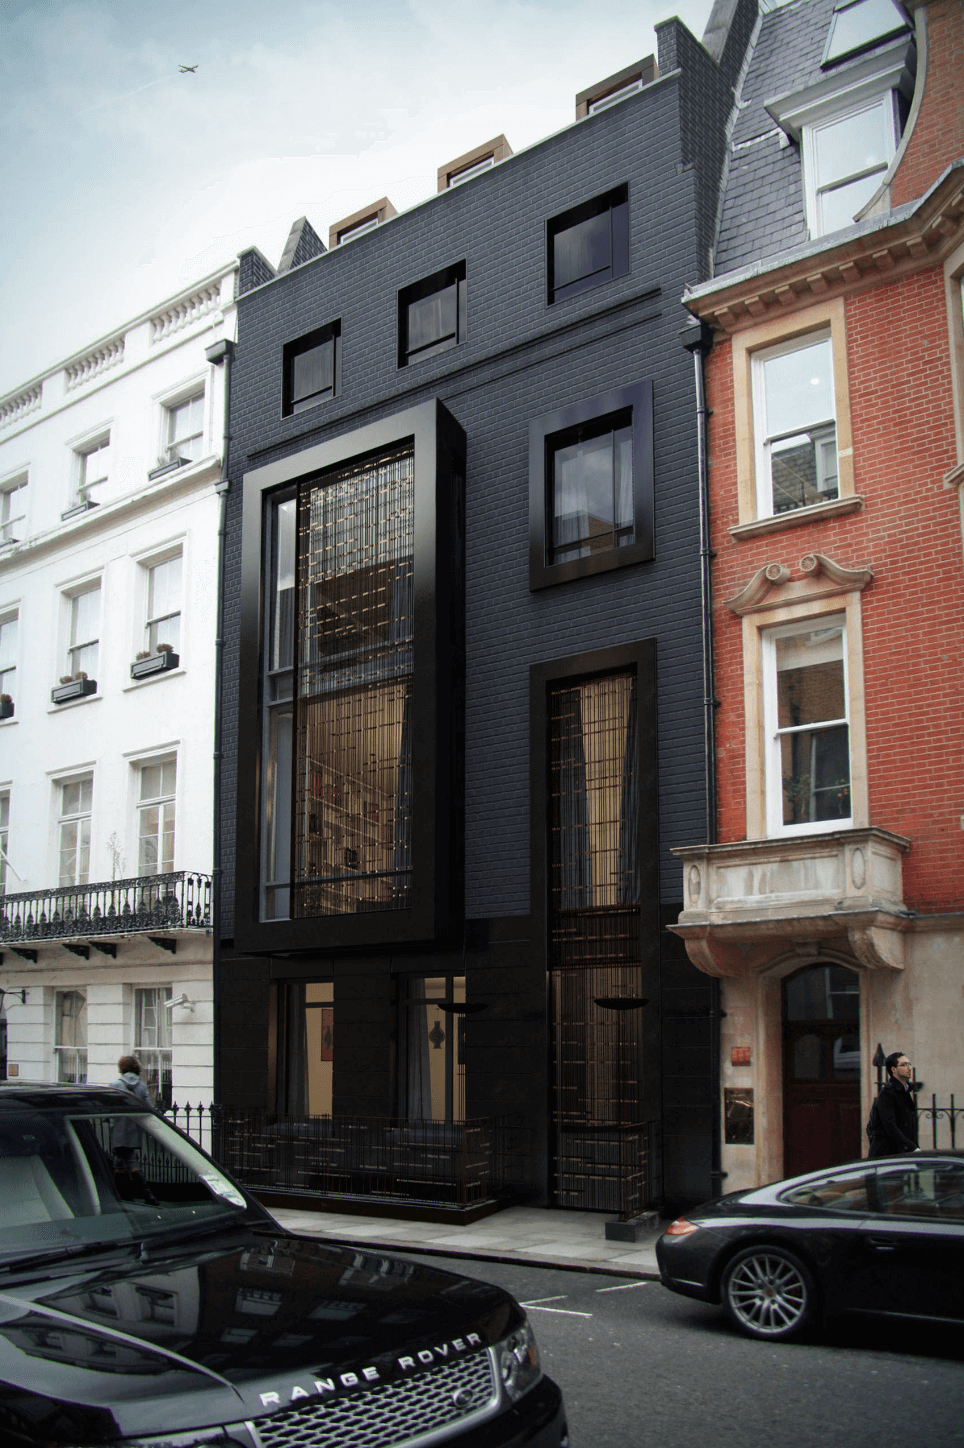 House Wood Paneling: Black Exterior Ideas For A Hauntingly Beautiful Home